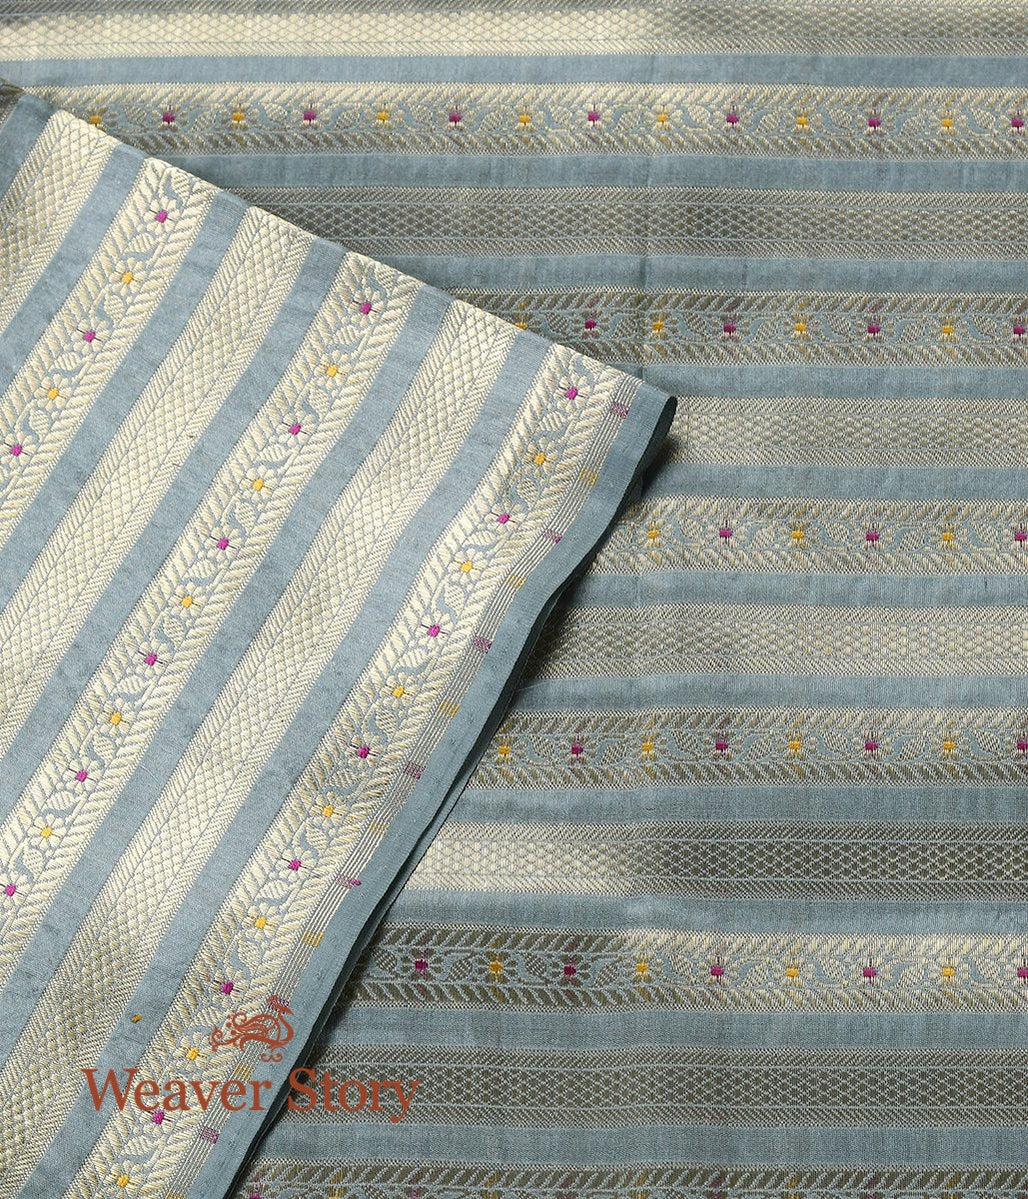 Handwoven Powder Blue Meenakari Brocade Fabric with Stripes